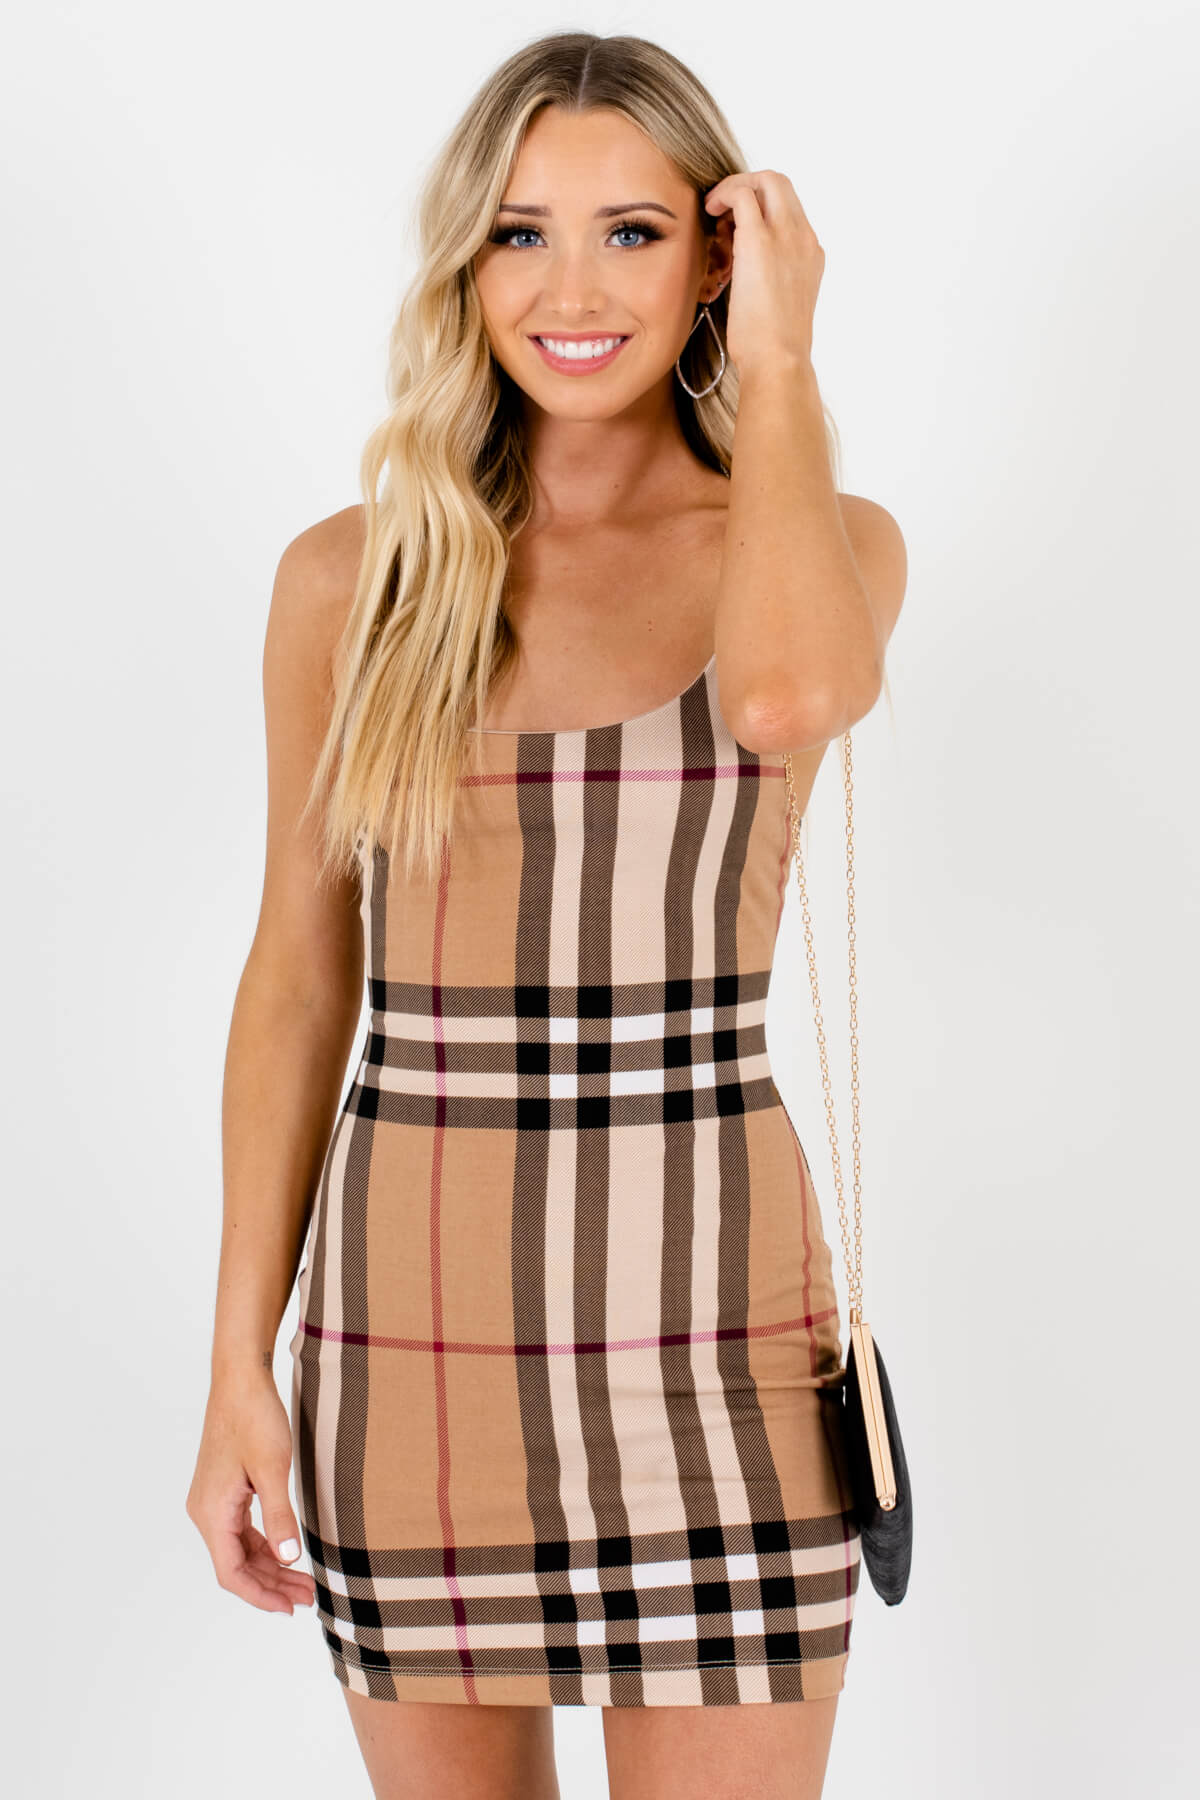 Brown Multicolored Plaid Patterned Boutique Mini Dresses for Women